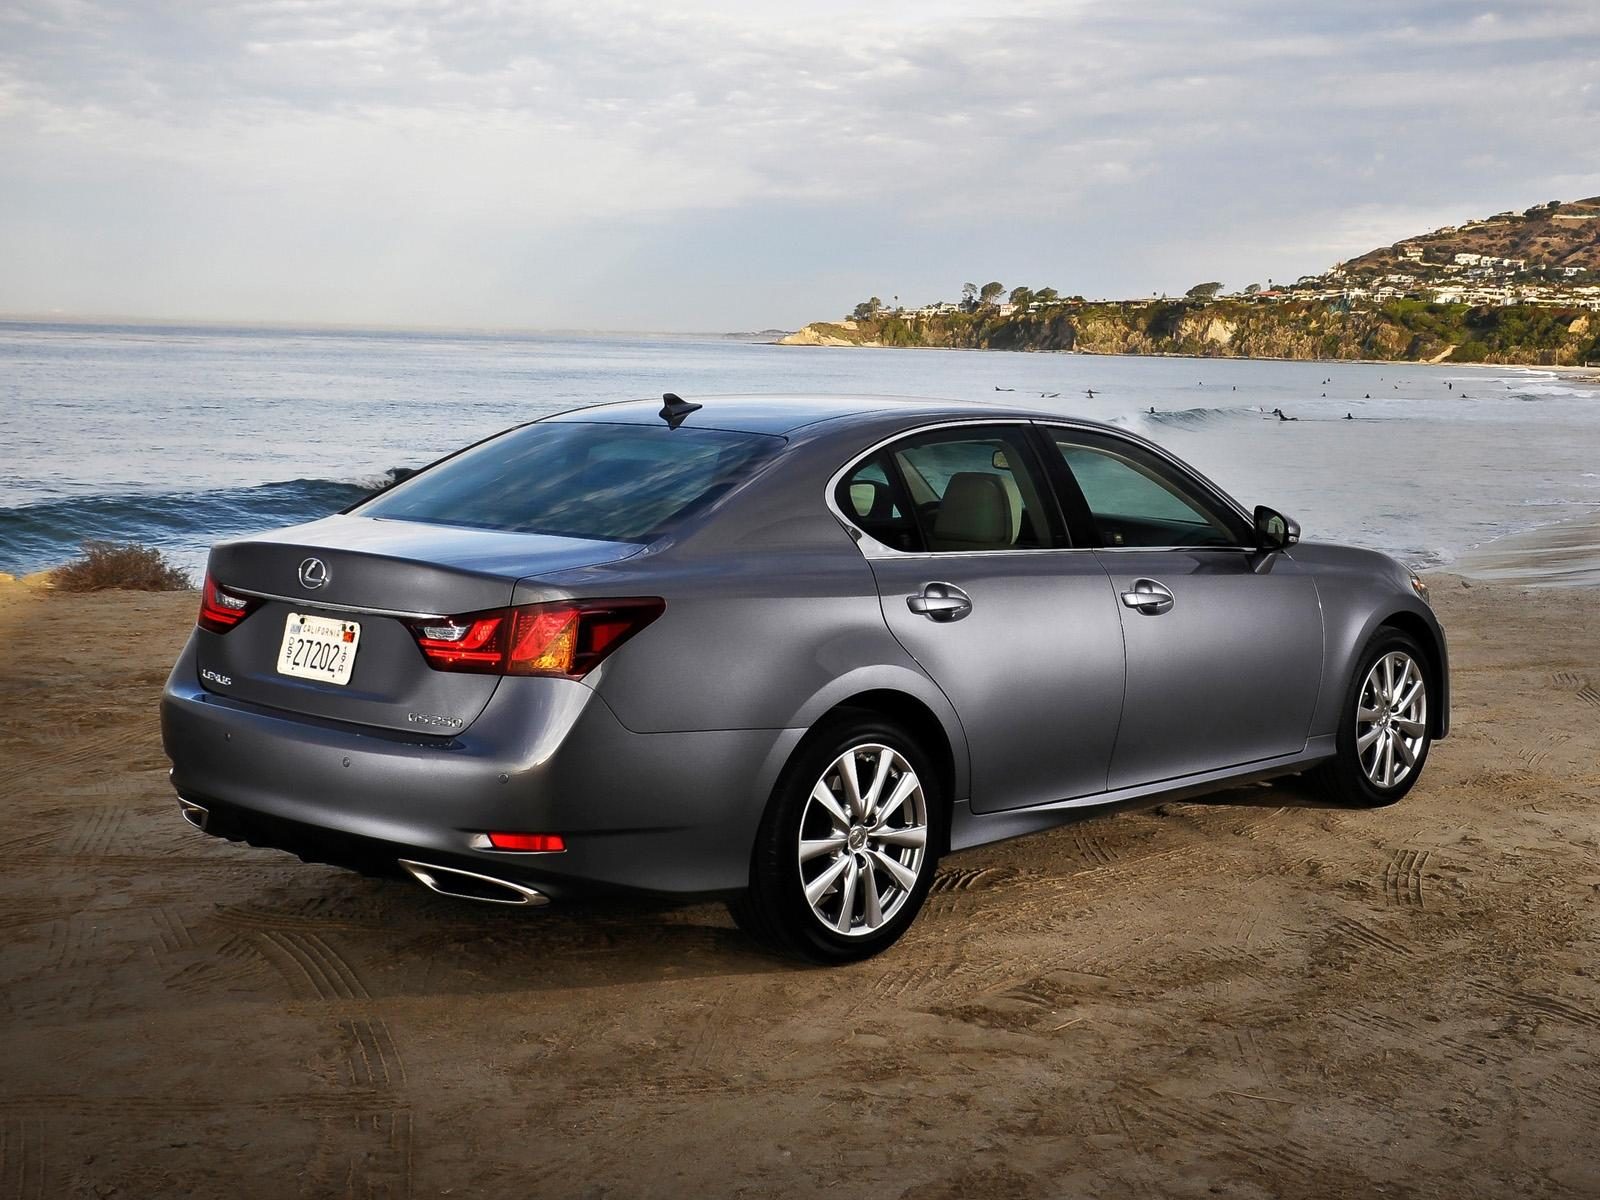 2013 lexus is 250 information and photos zombiedrive. Black Bedroom Furniture Sets. Home Design Ideas